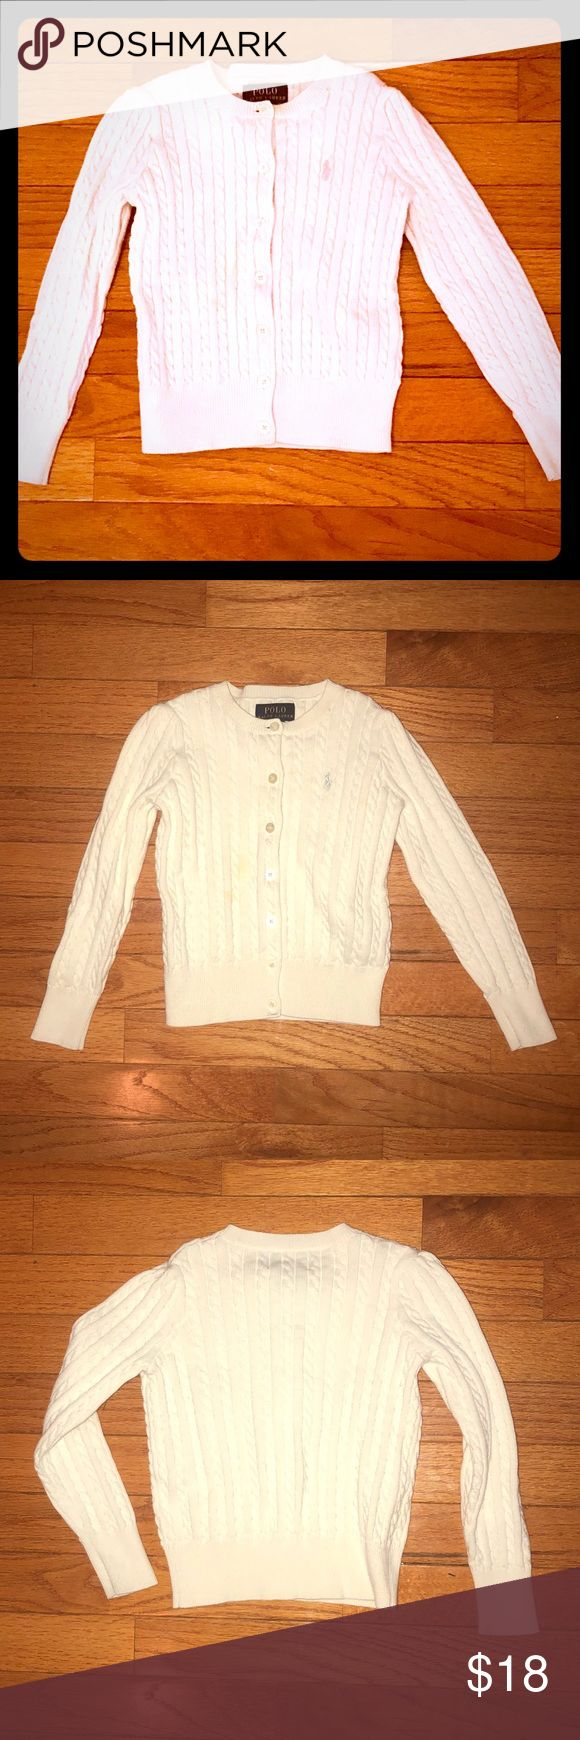 Ralph Lauren Girl's Button-Down Cardigan Ralph Lauren Polo Little Girl's Off-White Cardigan with silver Polo symbol. Size 5. Very gently used and excellent condition. No stains or pulls.  Smoke-free home. Polo by Ralph Lauren Shirts & Tops Sweaters